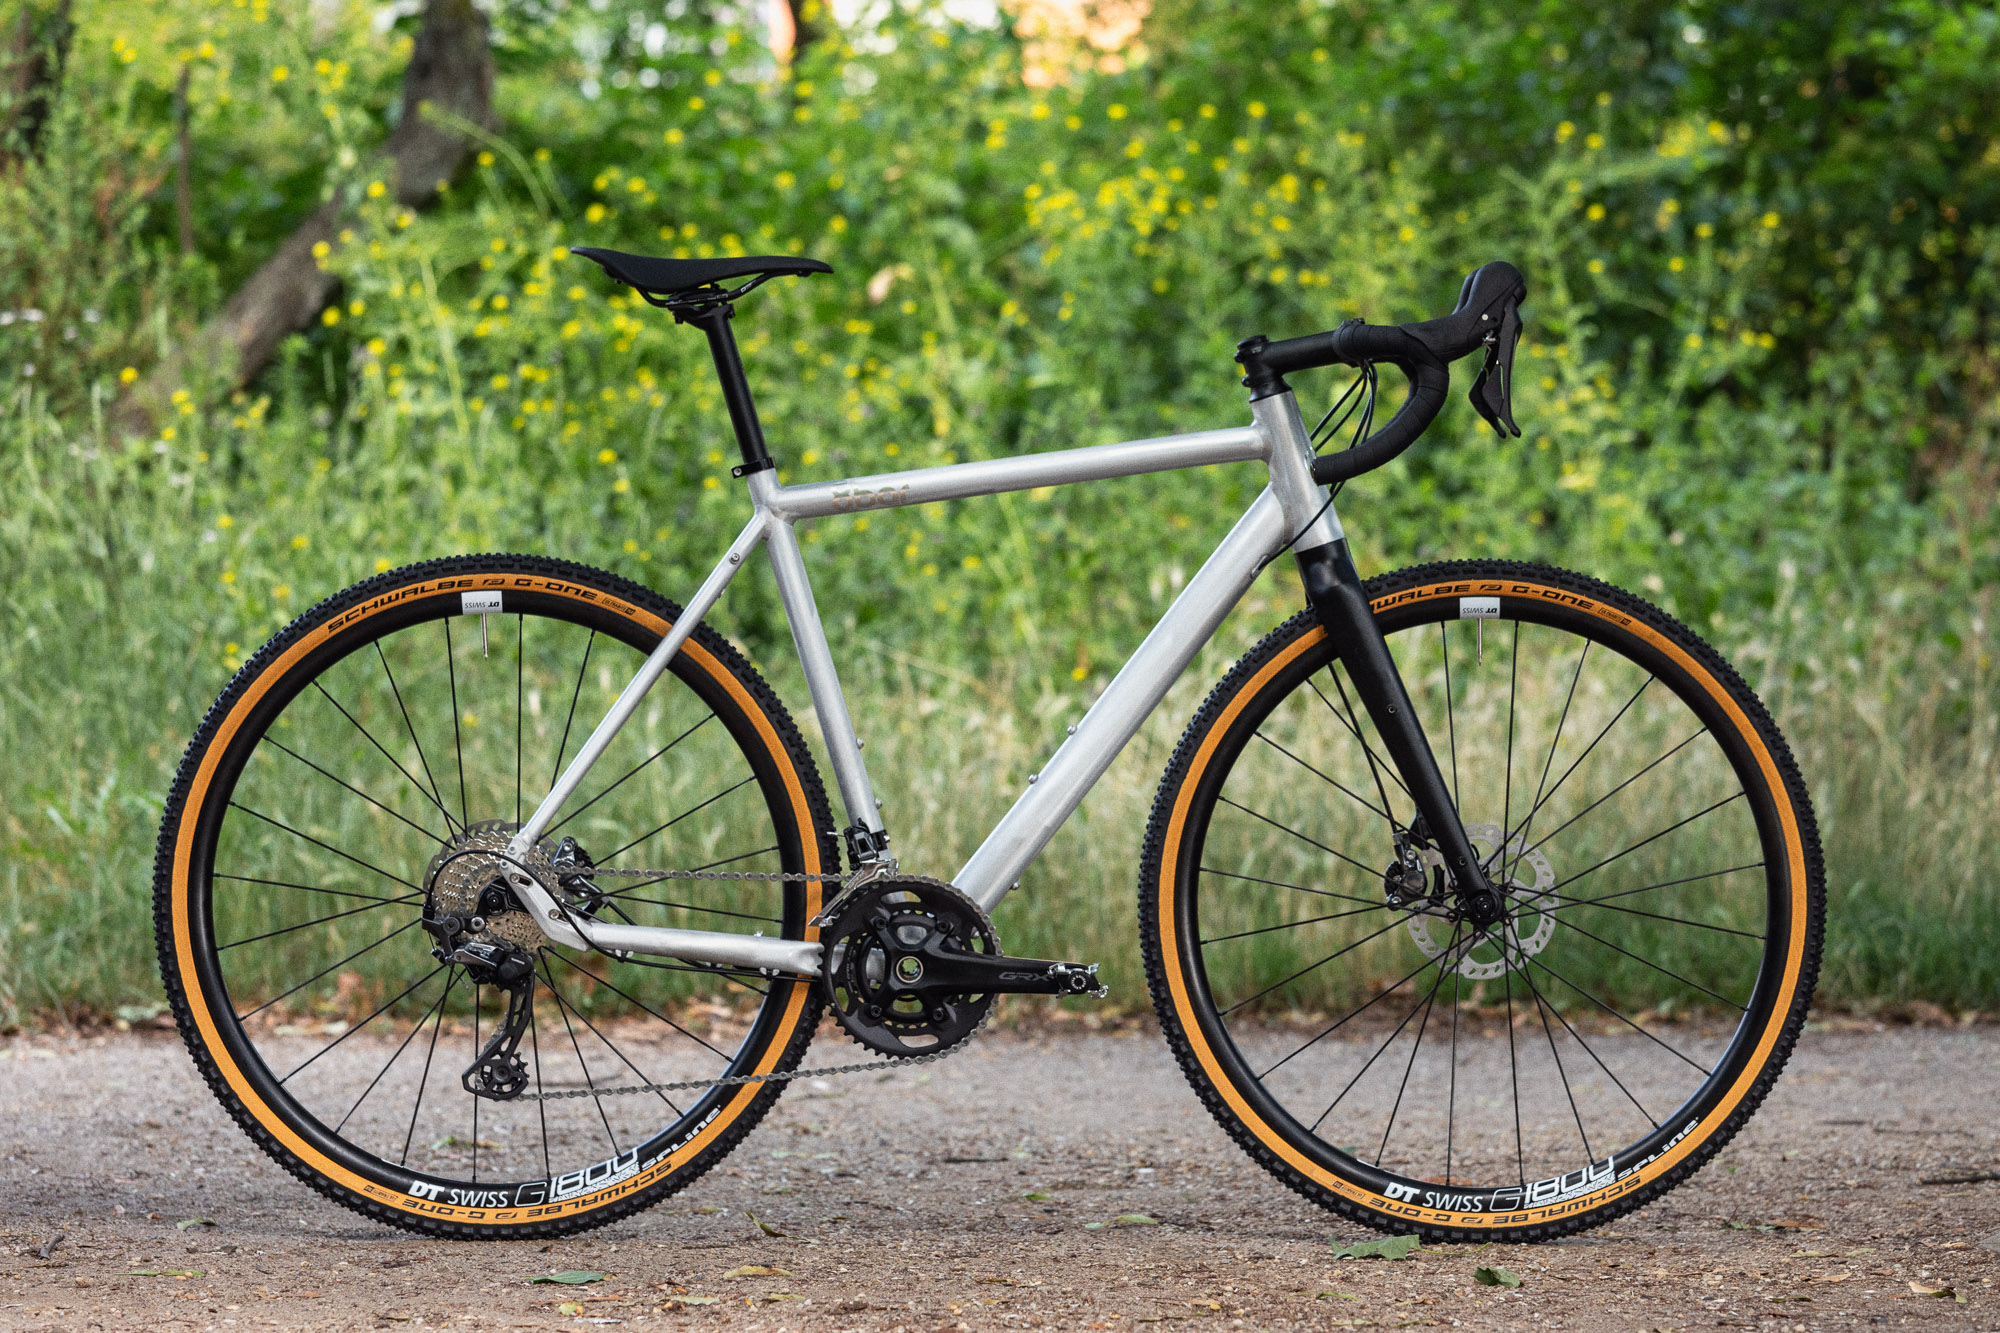 8bar complete bike mitte raw gravel lr-1